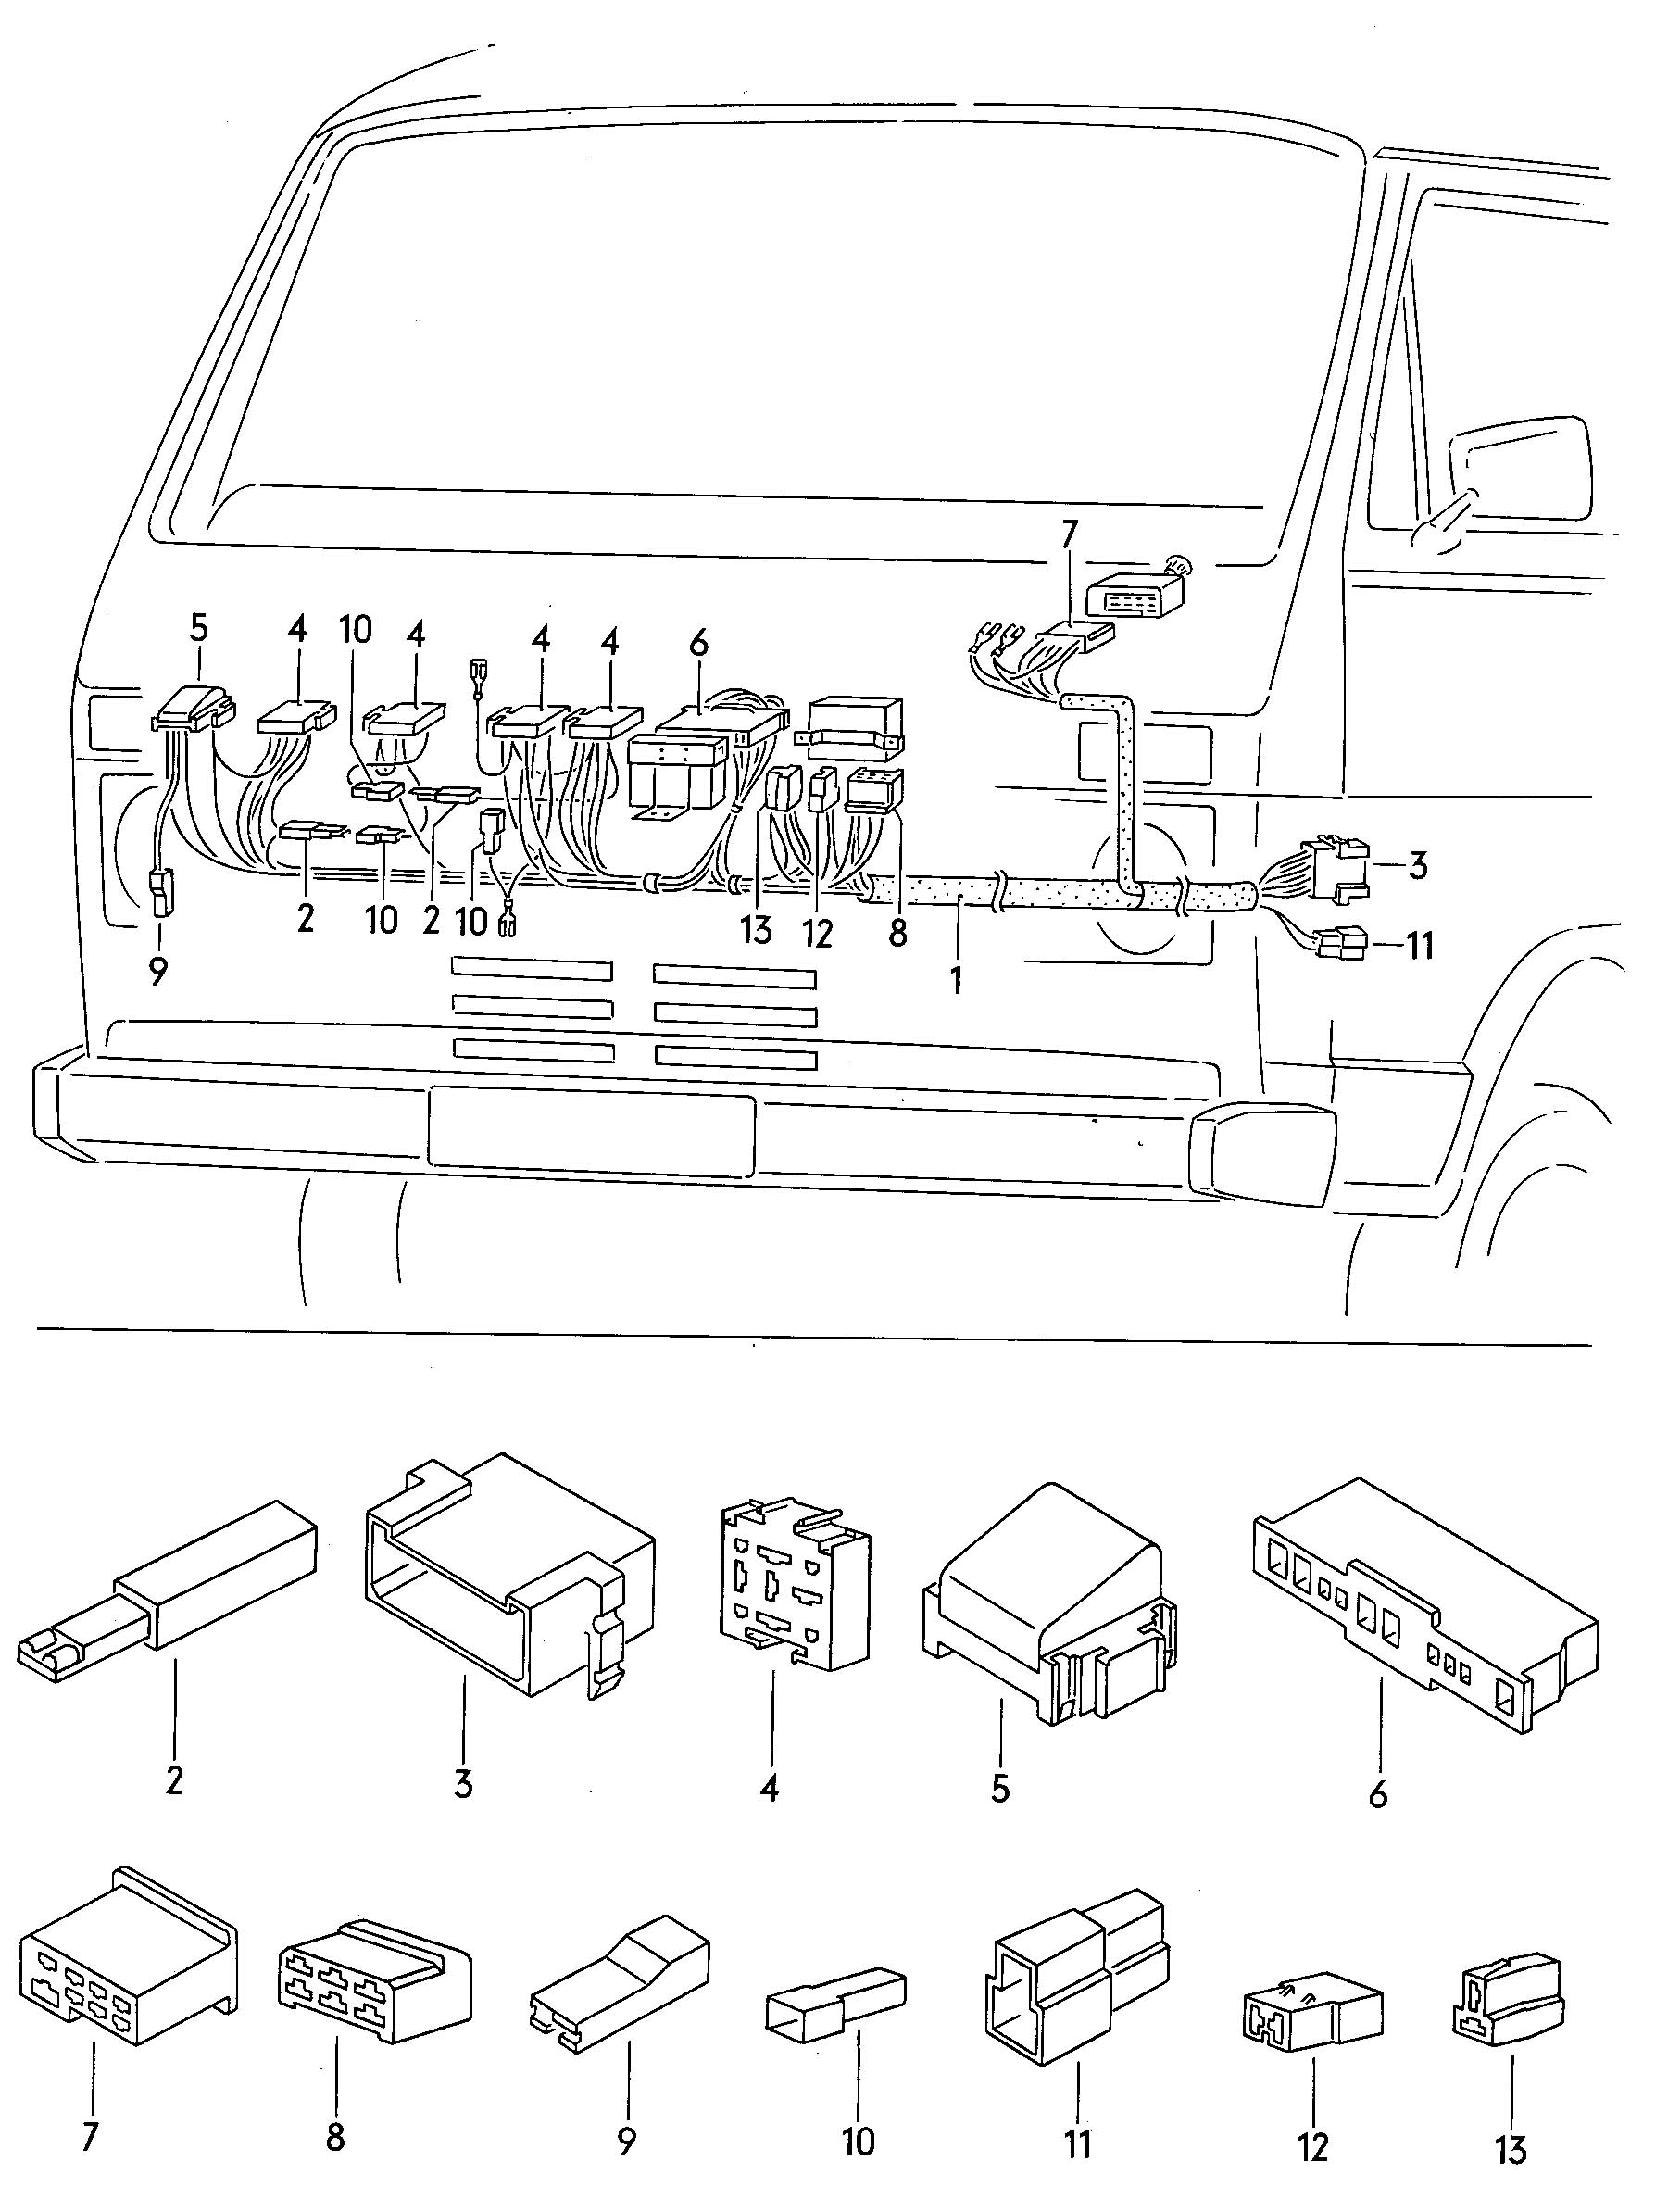 94 ford probe fuse box diagram